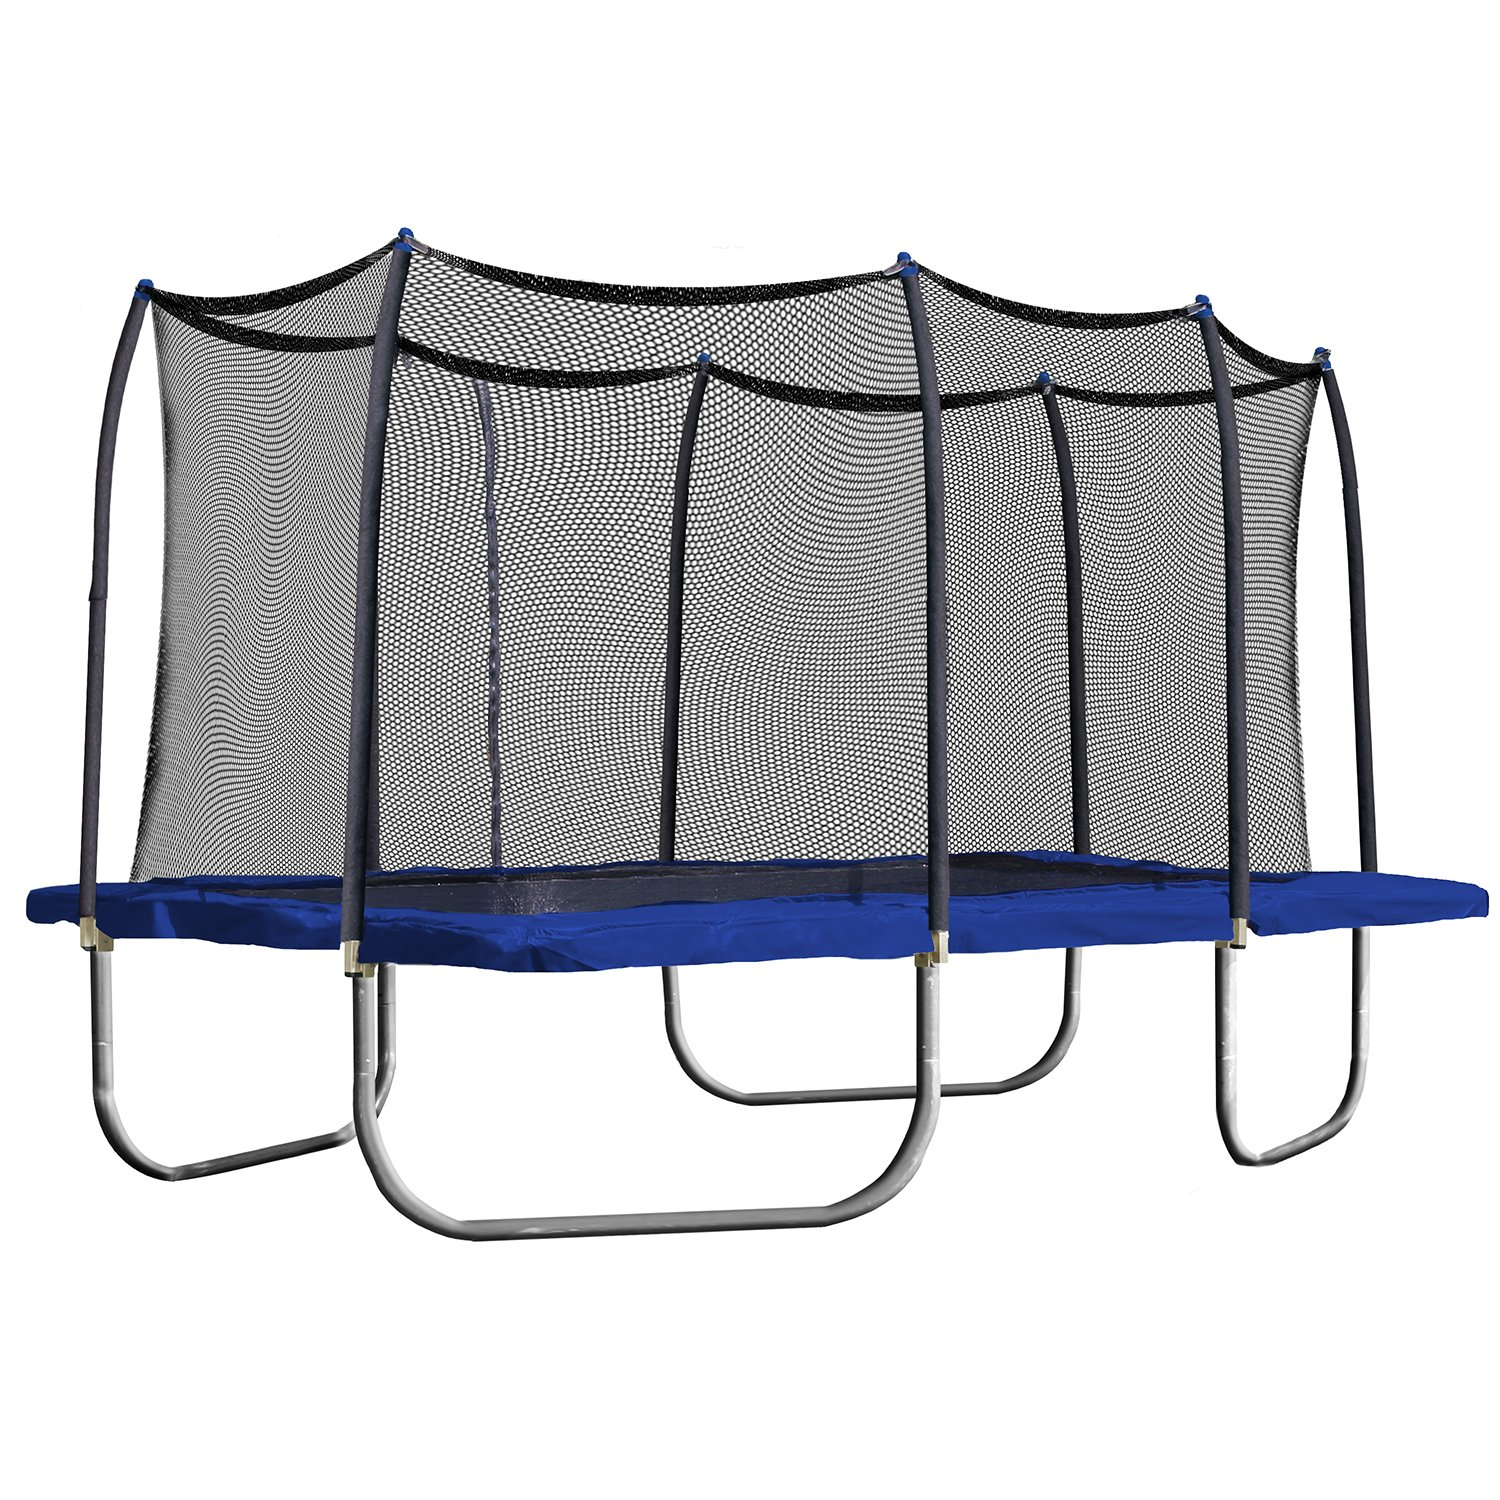 50 Best And Safest Trampolines Of 2019 Guide Amp Reviews